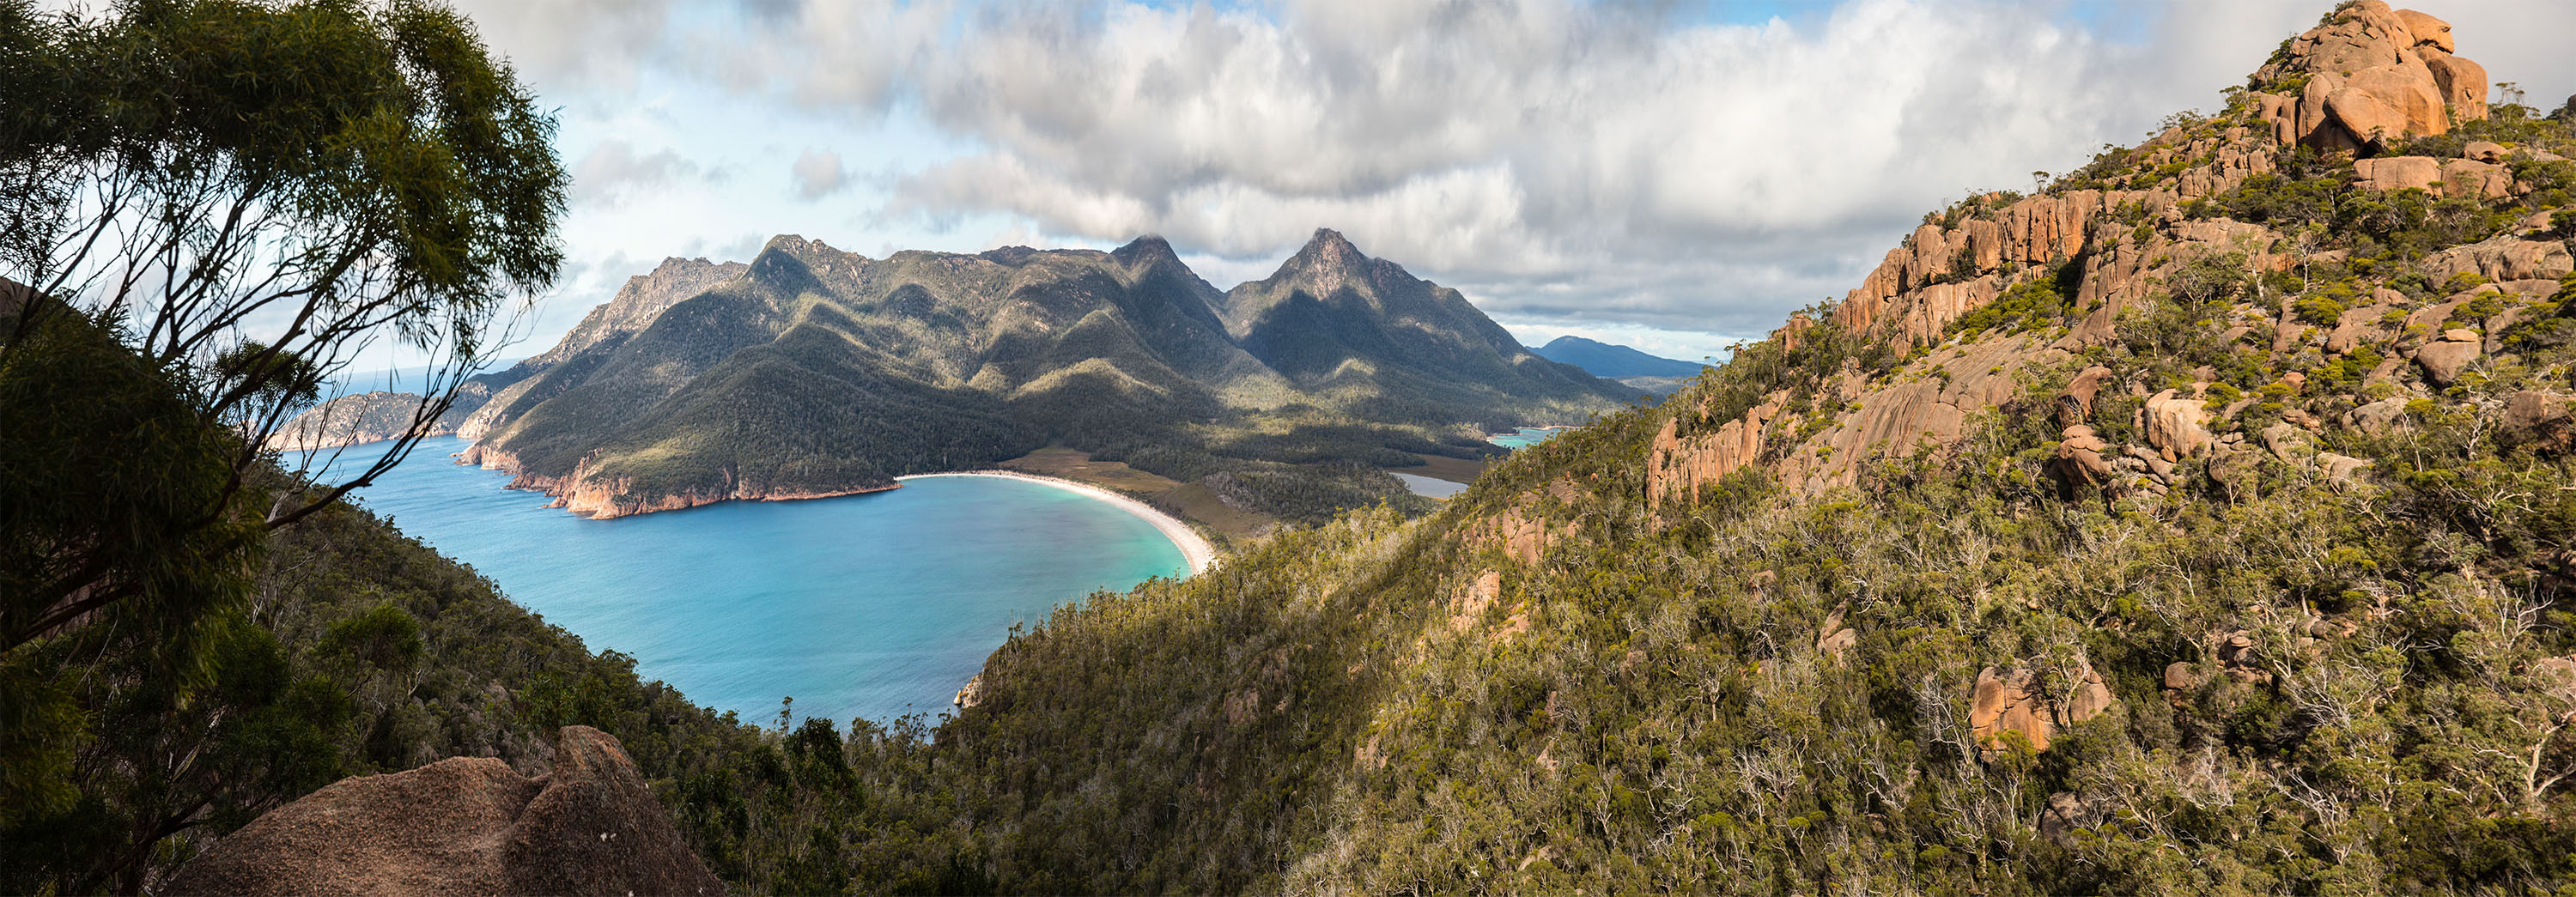 Tasmania: Wineglass bay, Australia